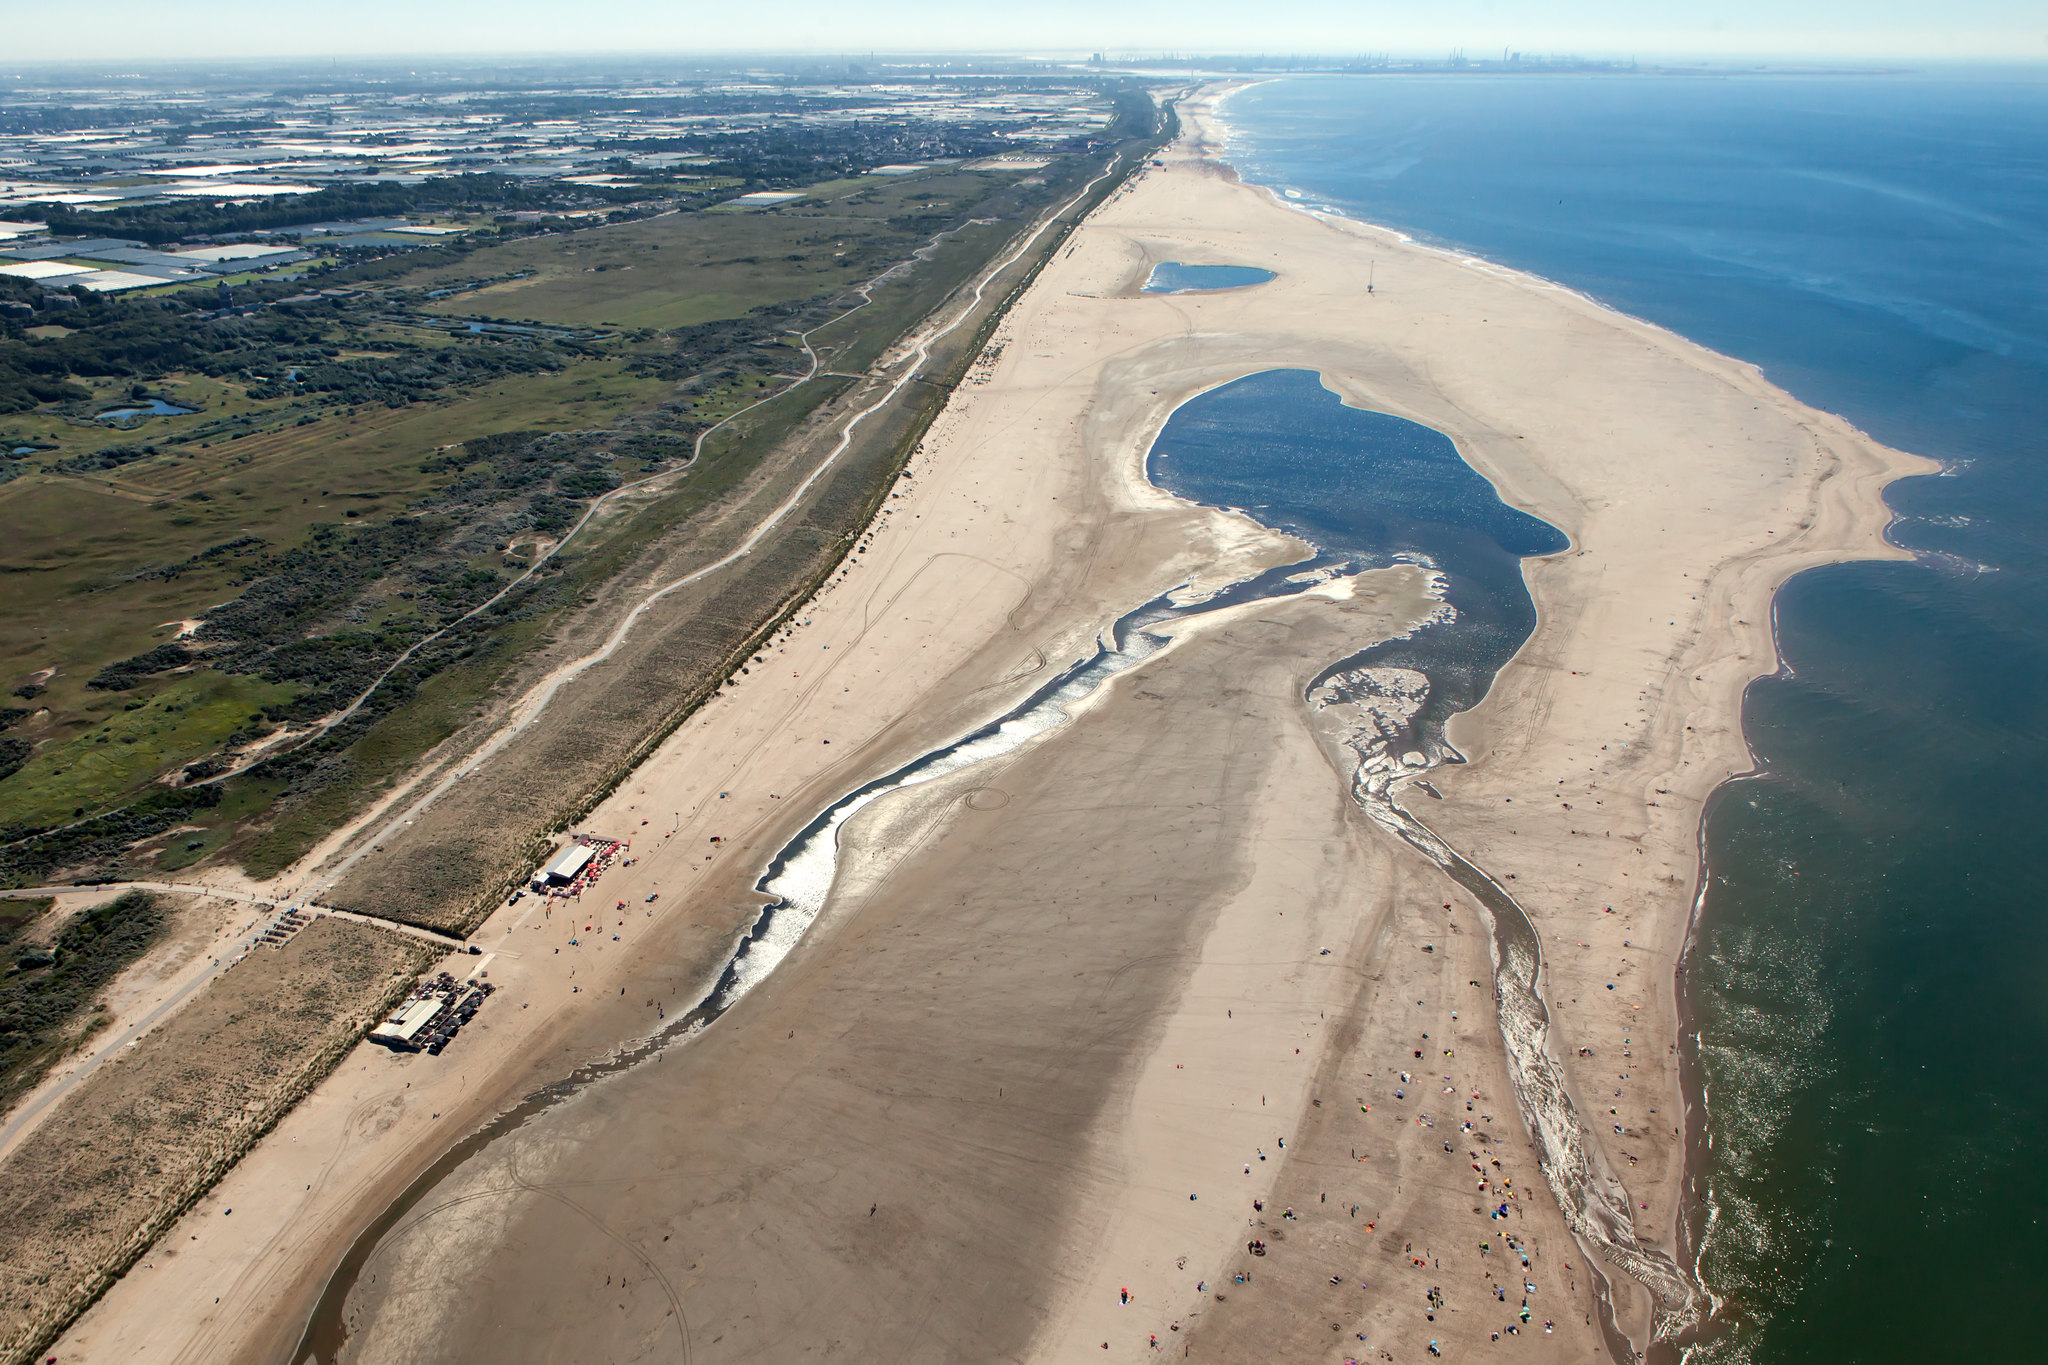 "<p>The ""Sand Motor"" helps prevent flooding caused by coastal erosion. Image: JvL/WRI</p>"